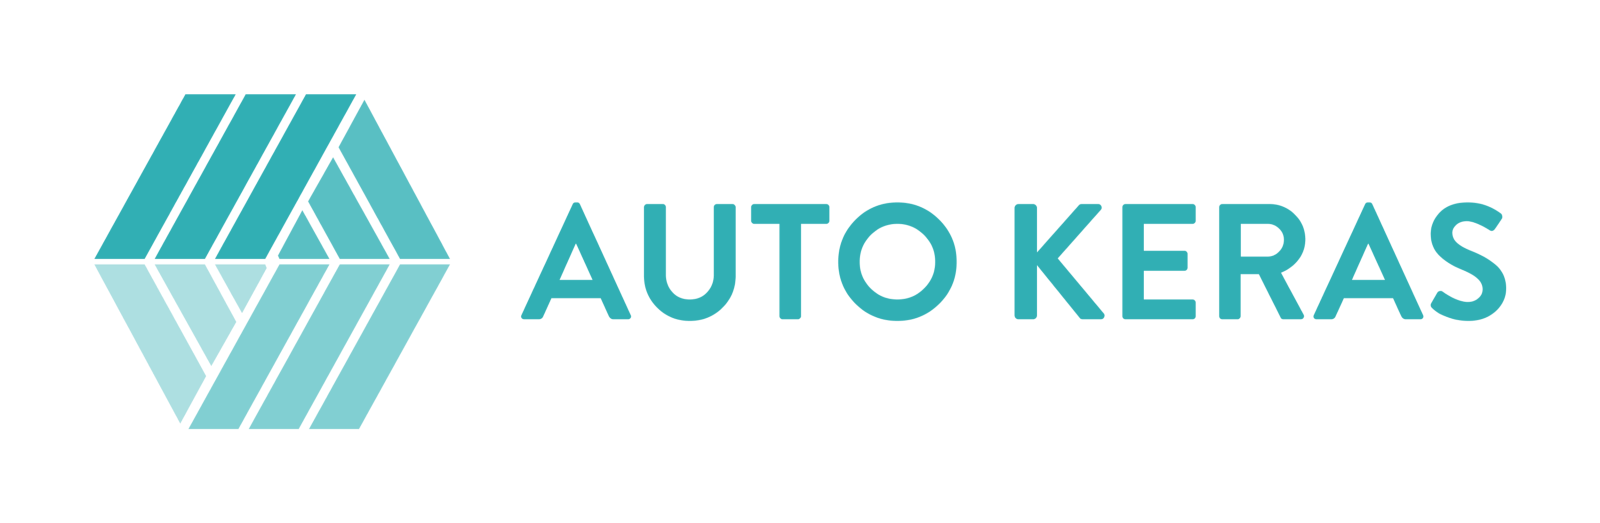 AutoKeras: The Killer of Google's AutoML